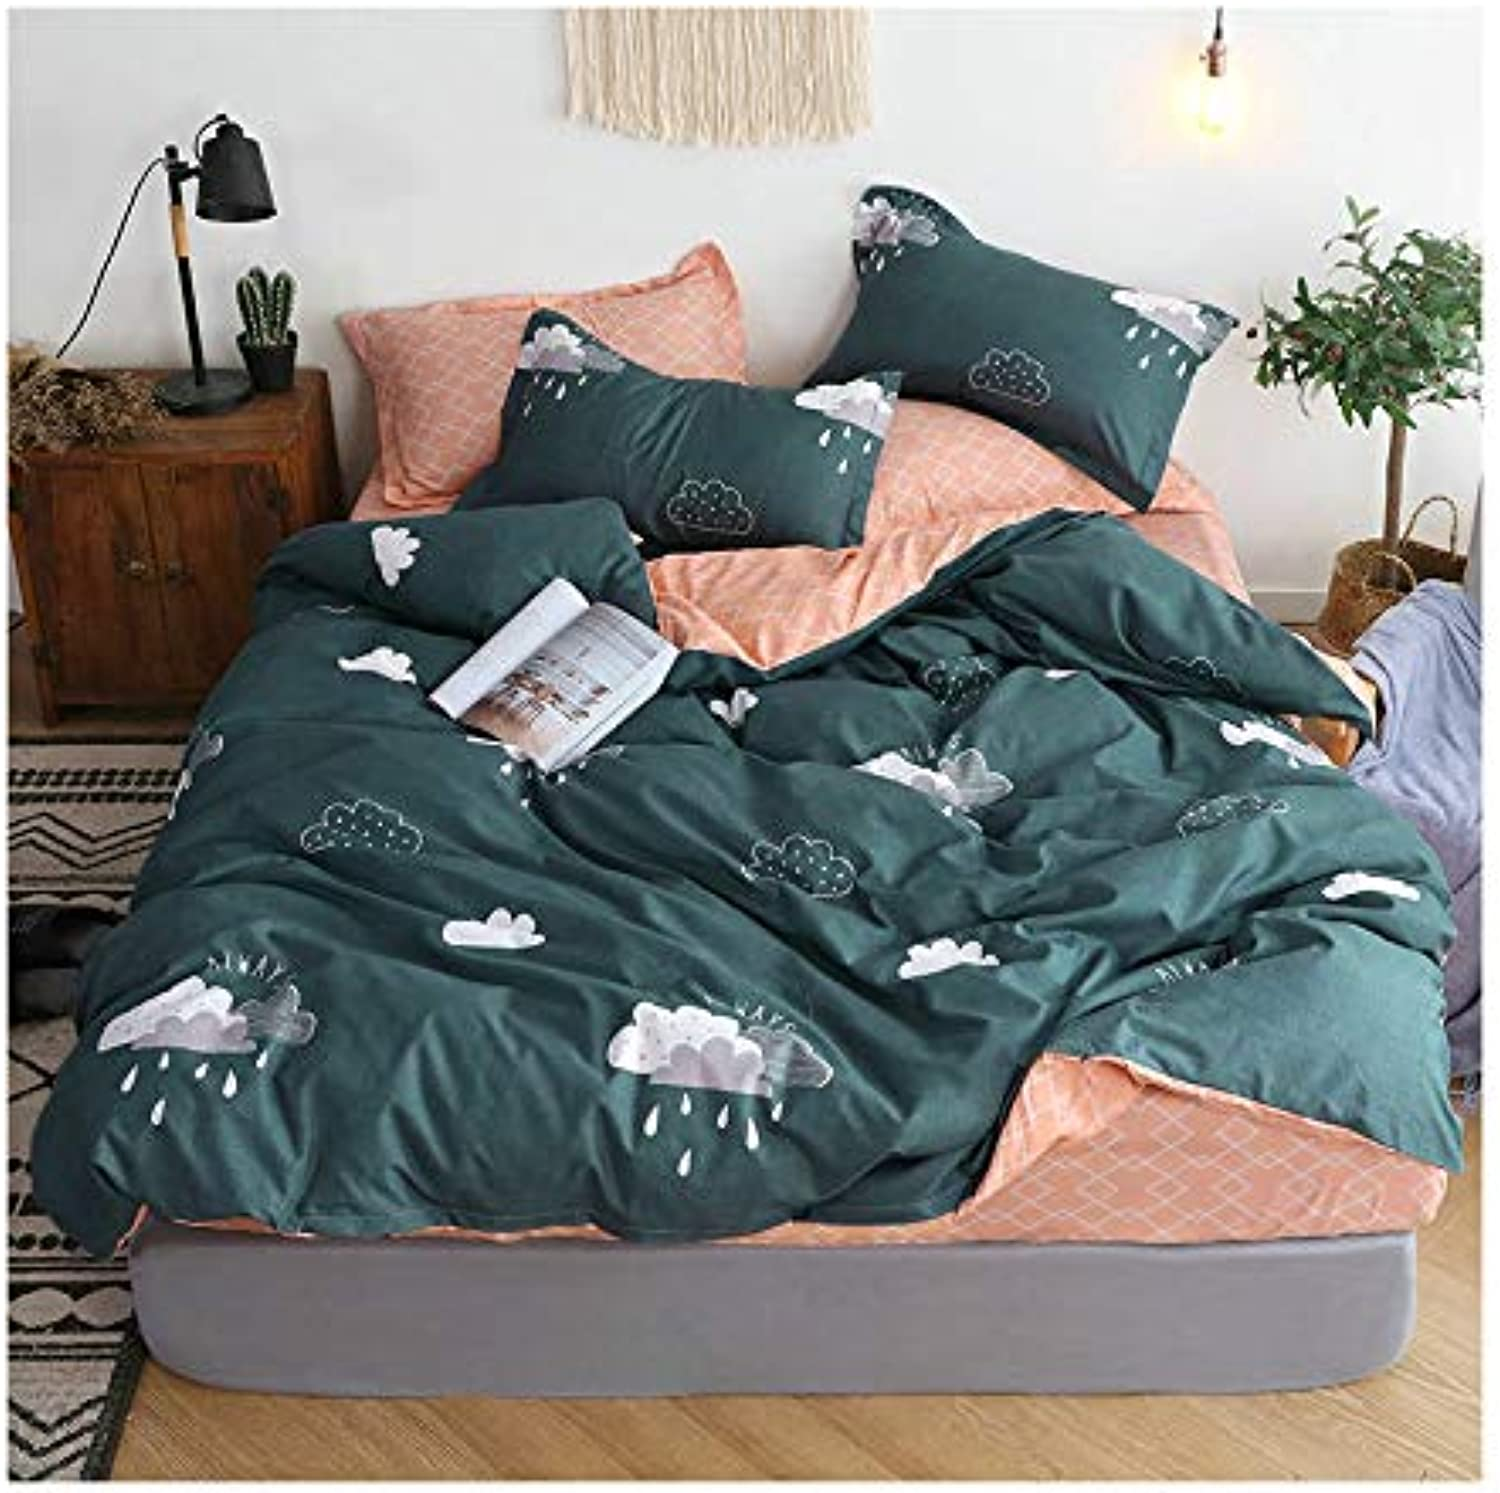 KFZ Hot Heart Flamingo Printed Bed Set BeddingSet Includes Comforter Cover Fitted Sheet Pillowcases Twin Full Queen Sheets Set Bohemian Fashinn for Kids 4pcs (Cloud, Grey, Full 70 x86 )